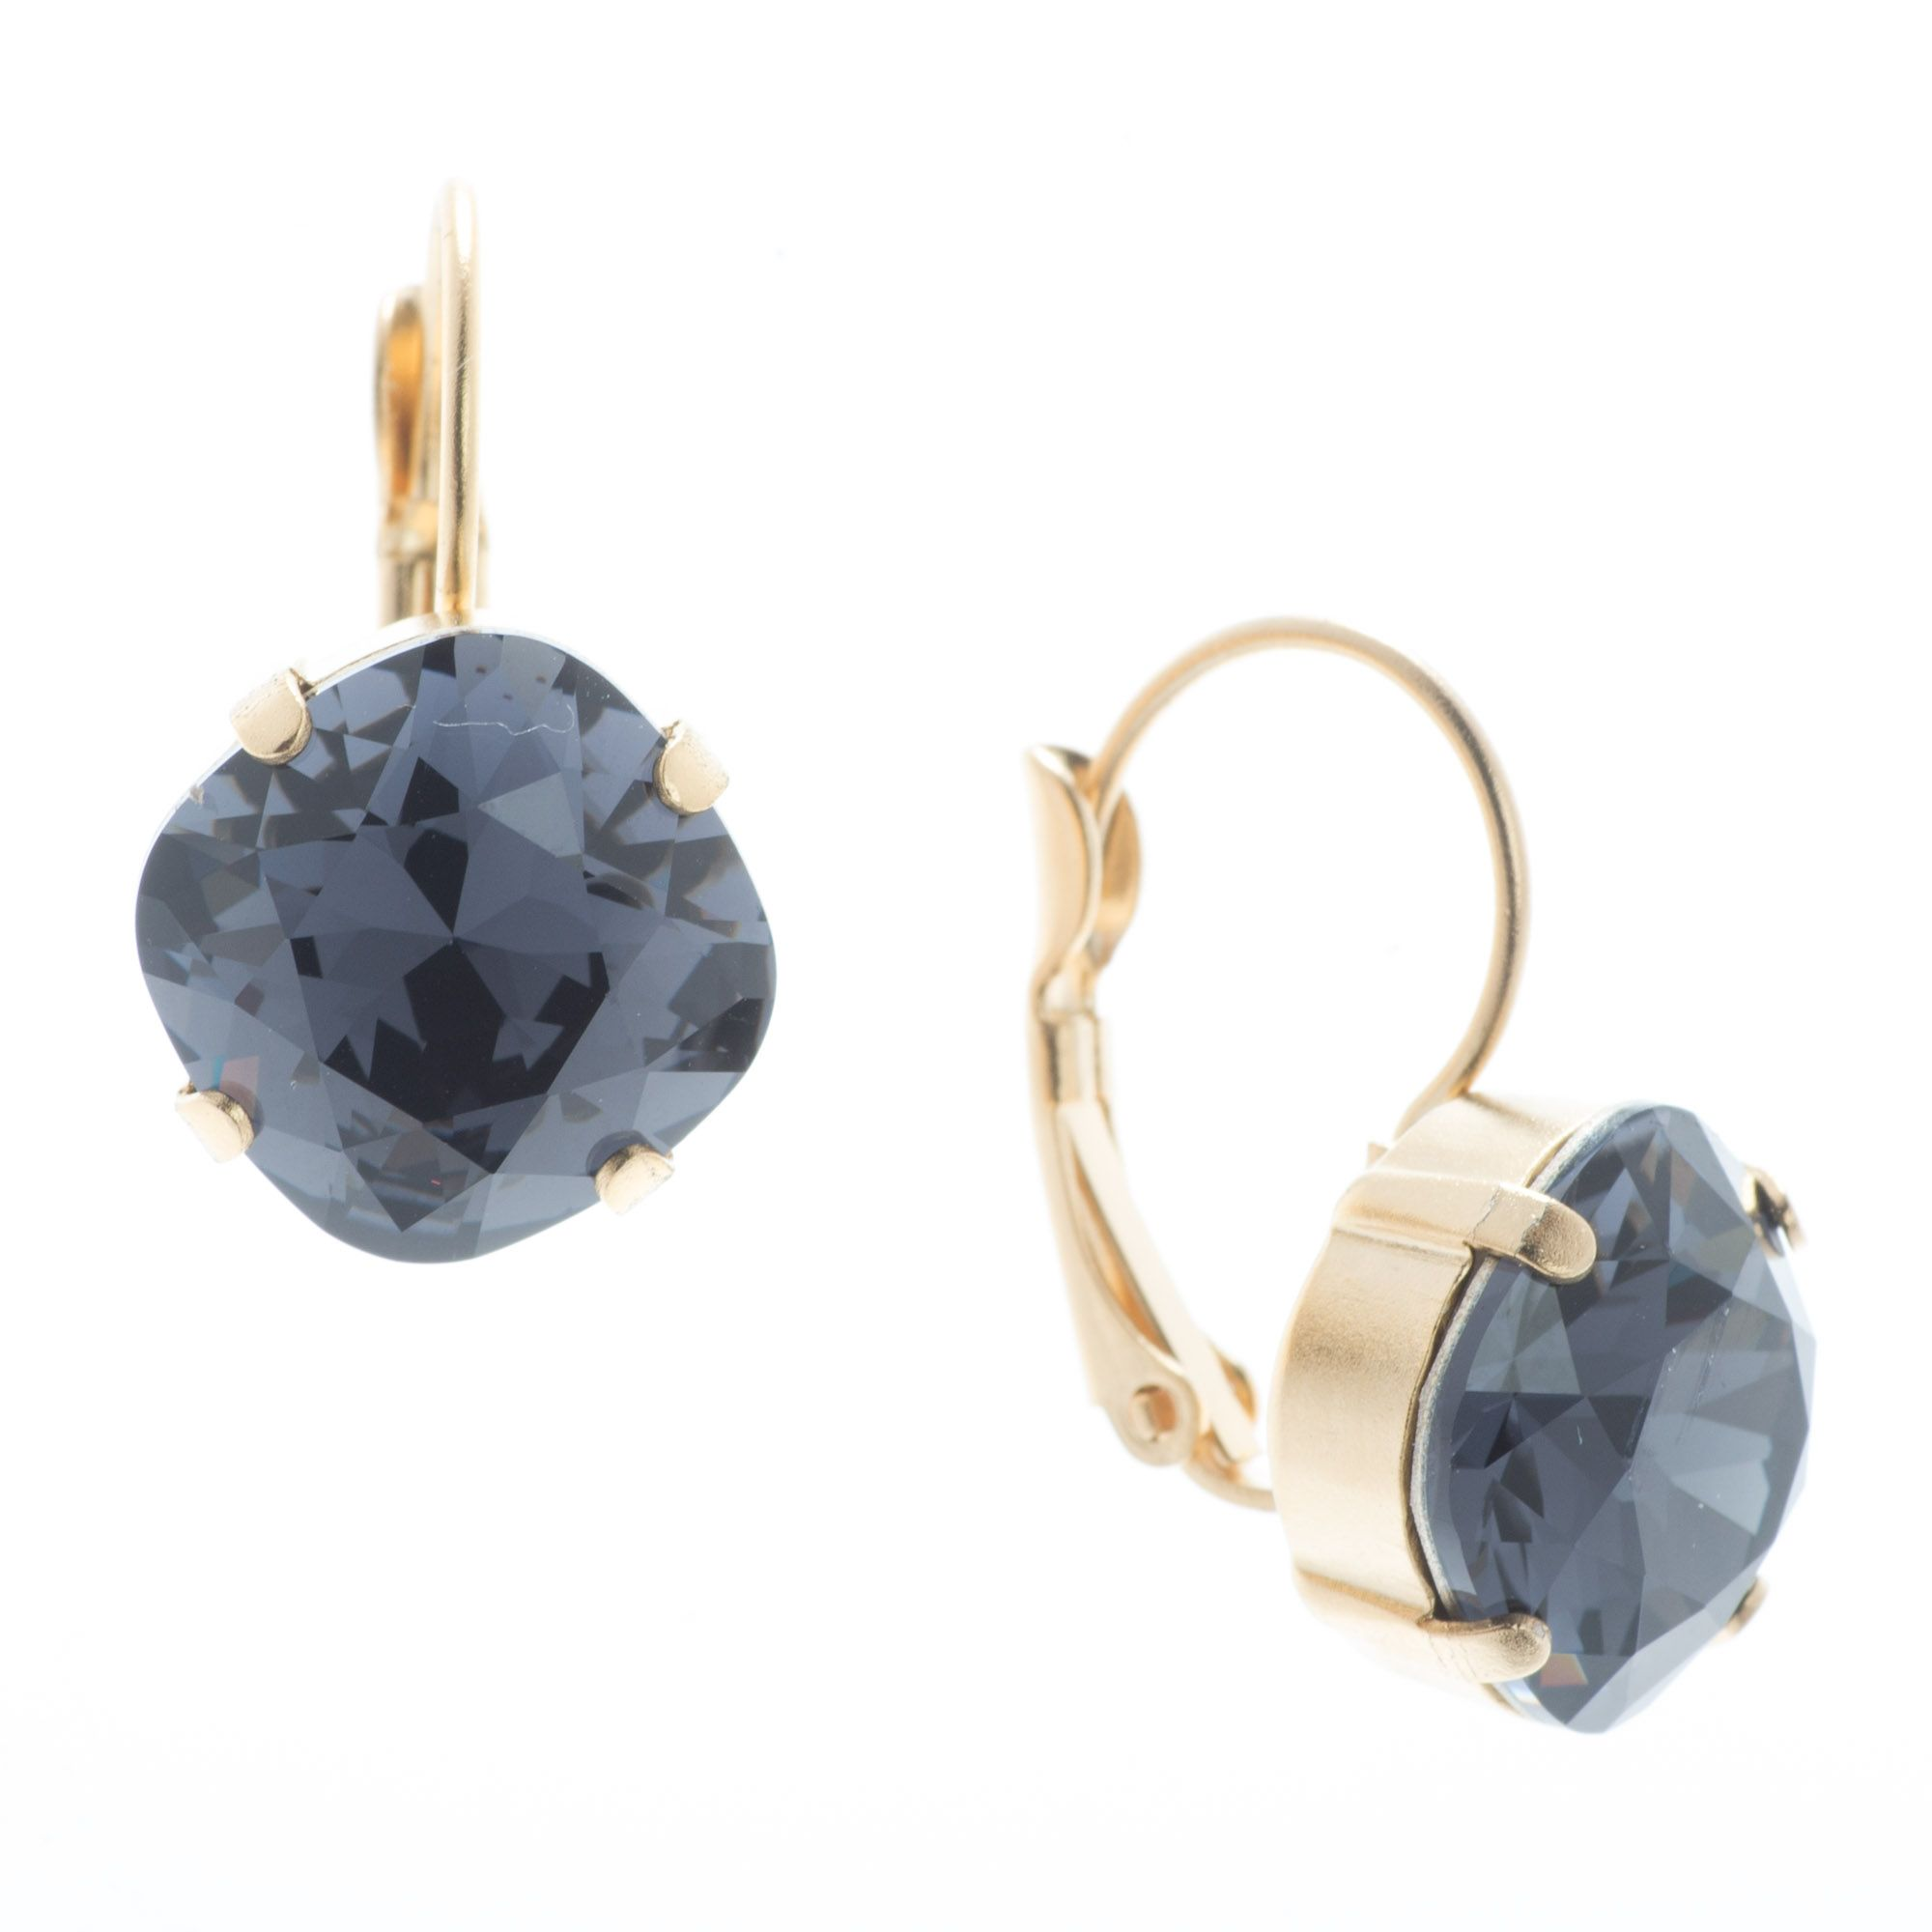 4ed2aa651 Lisa Marie Jewelry 12mm Square Swarovski Crystal Earrings - Graphite. Tap  to expand